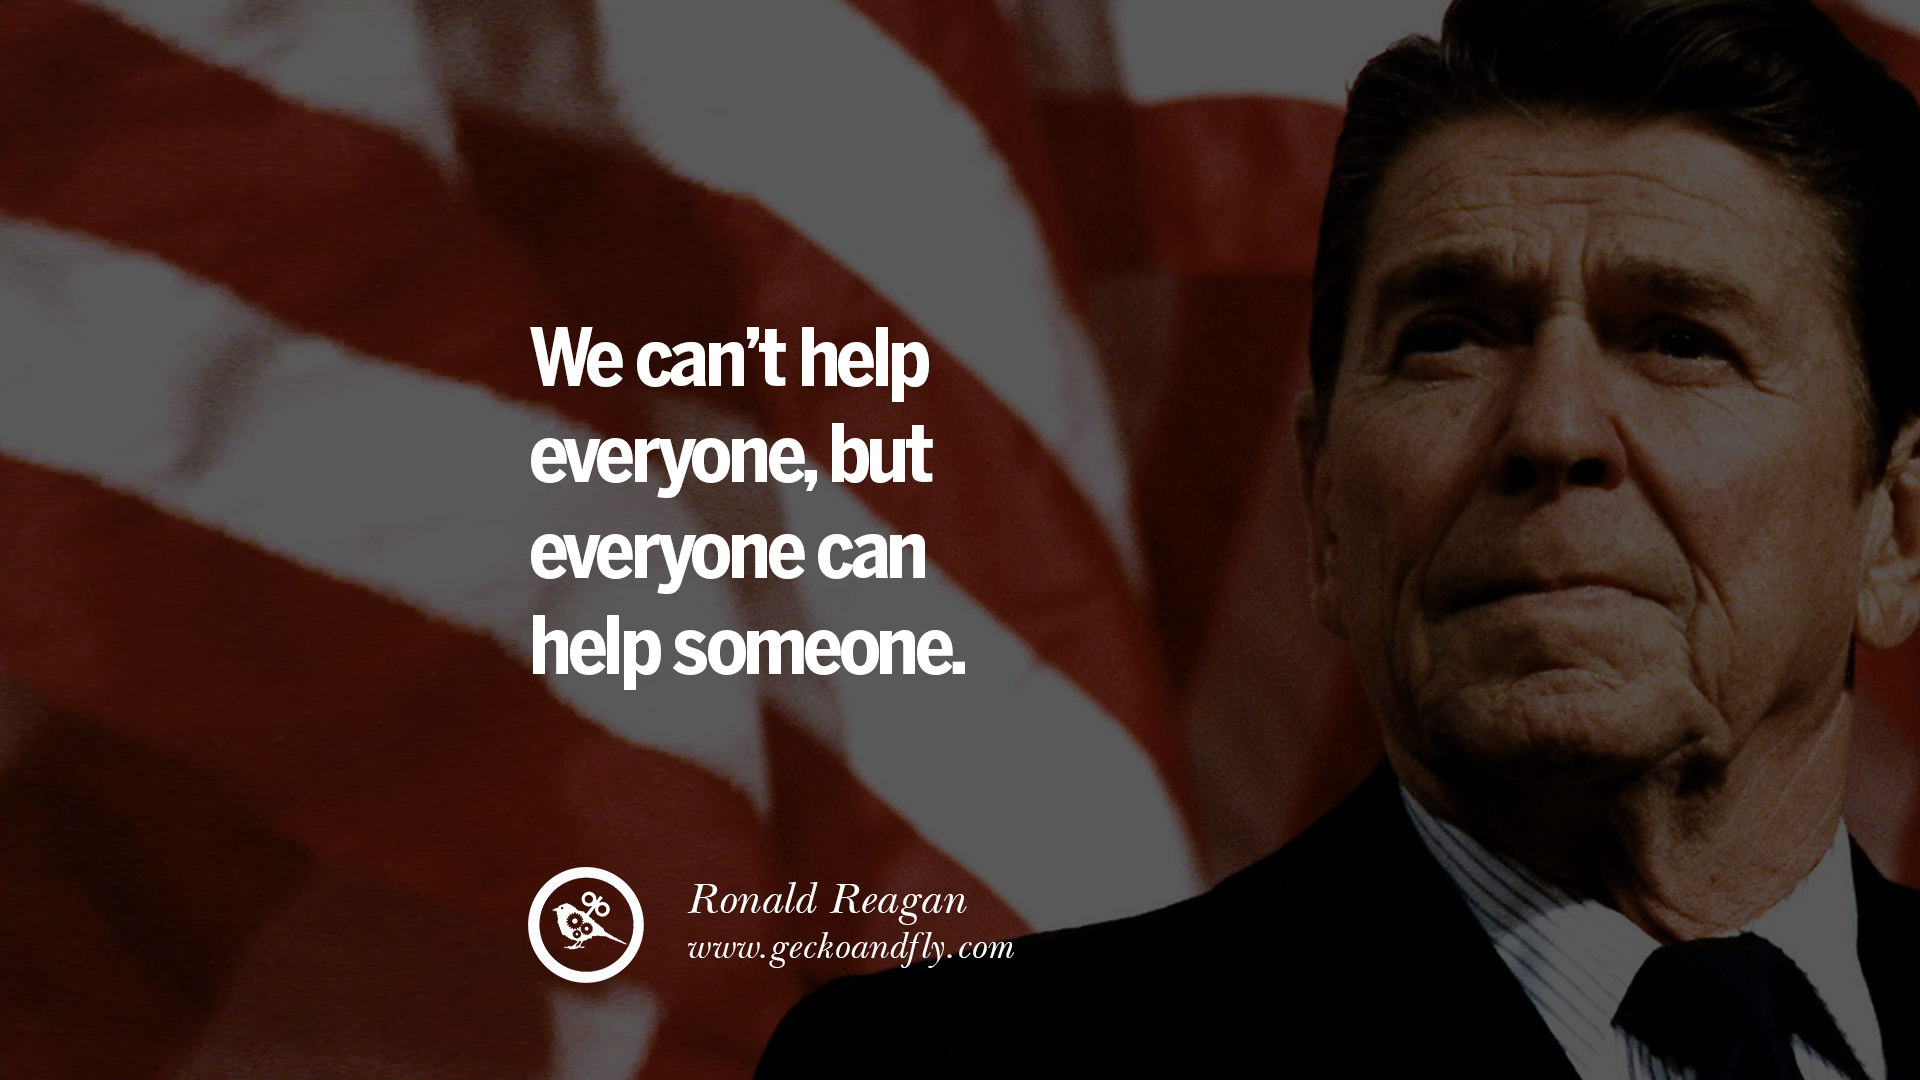 Ronald Reagan Quotes 37 Ronald Reagan Quotes on Welfare, Liberalism, Government and  Ronald Reagan Quotes